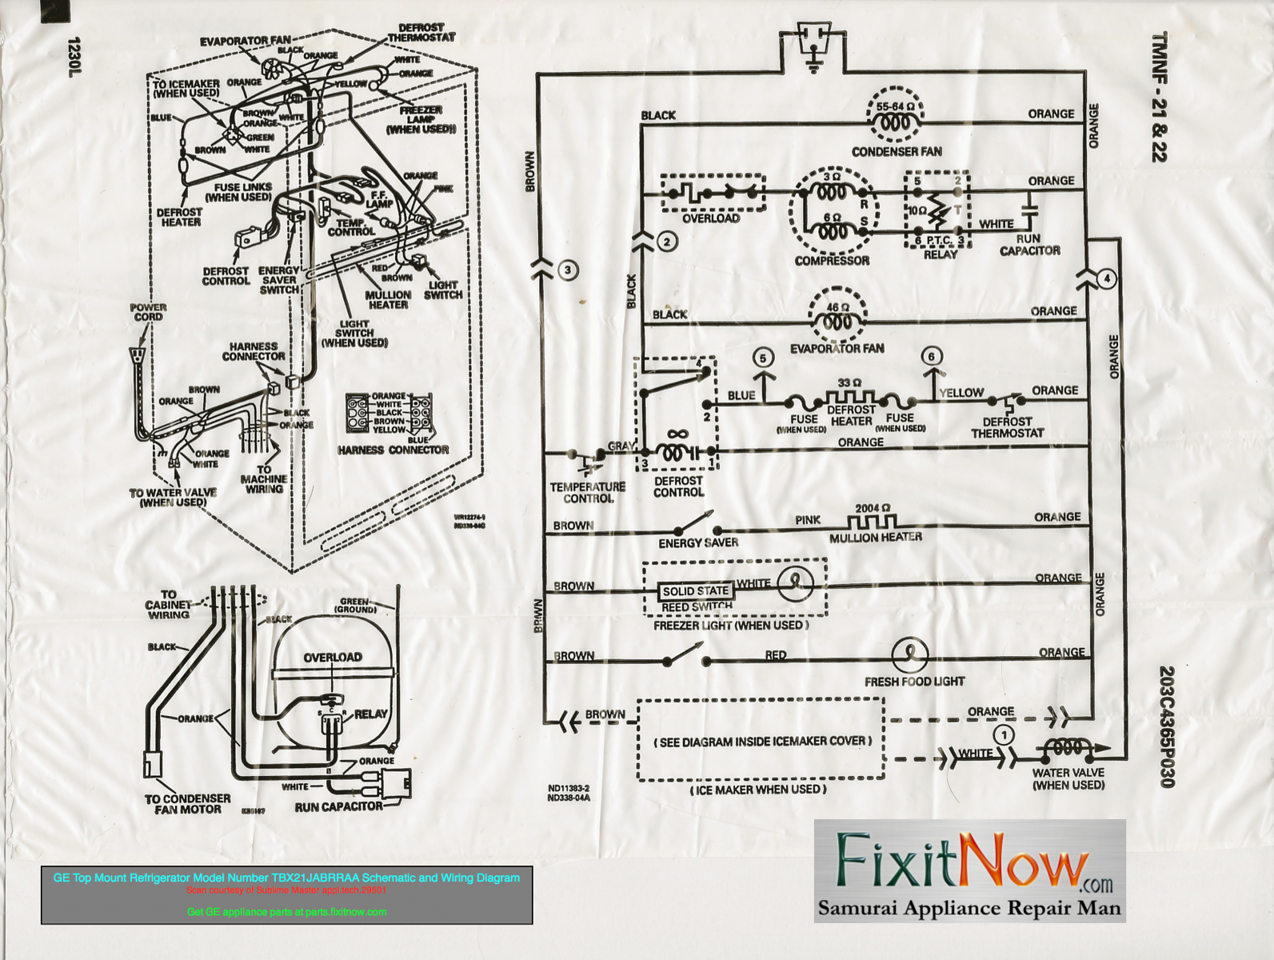 4904374061_e8eb3df6c6_o X2 wiring diagrams and schematics appliantology lg refrigerator wiring diagram at reclaimingppi.co